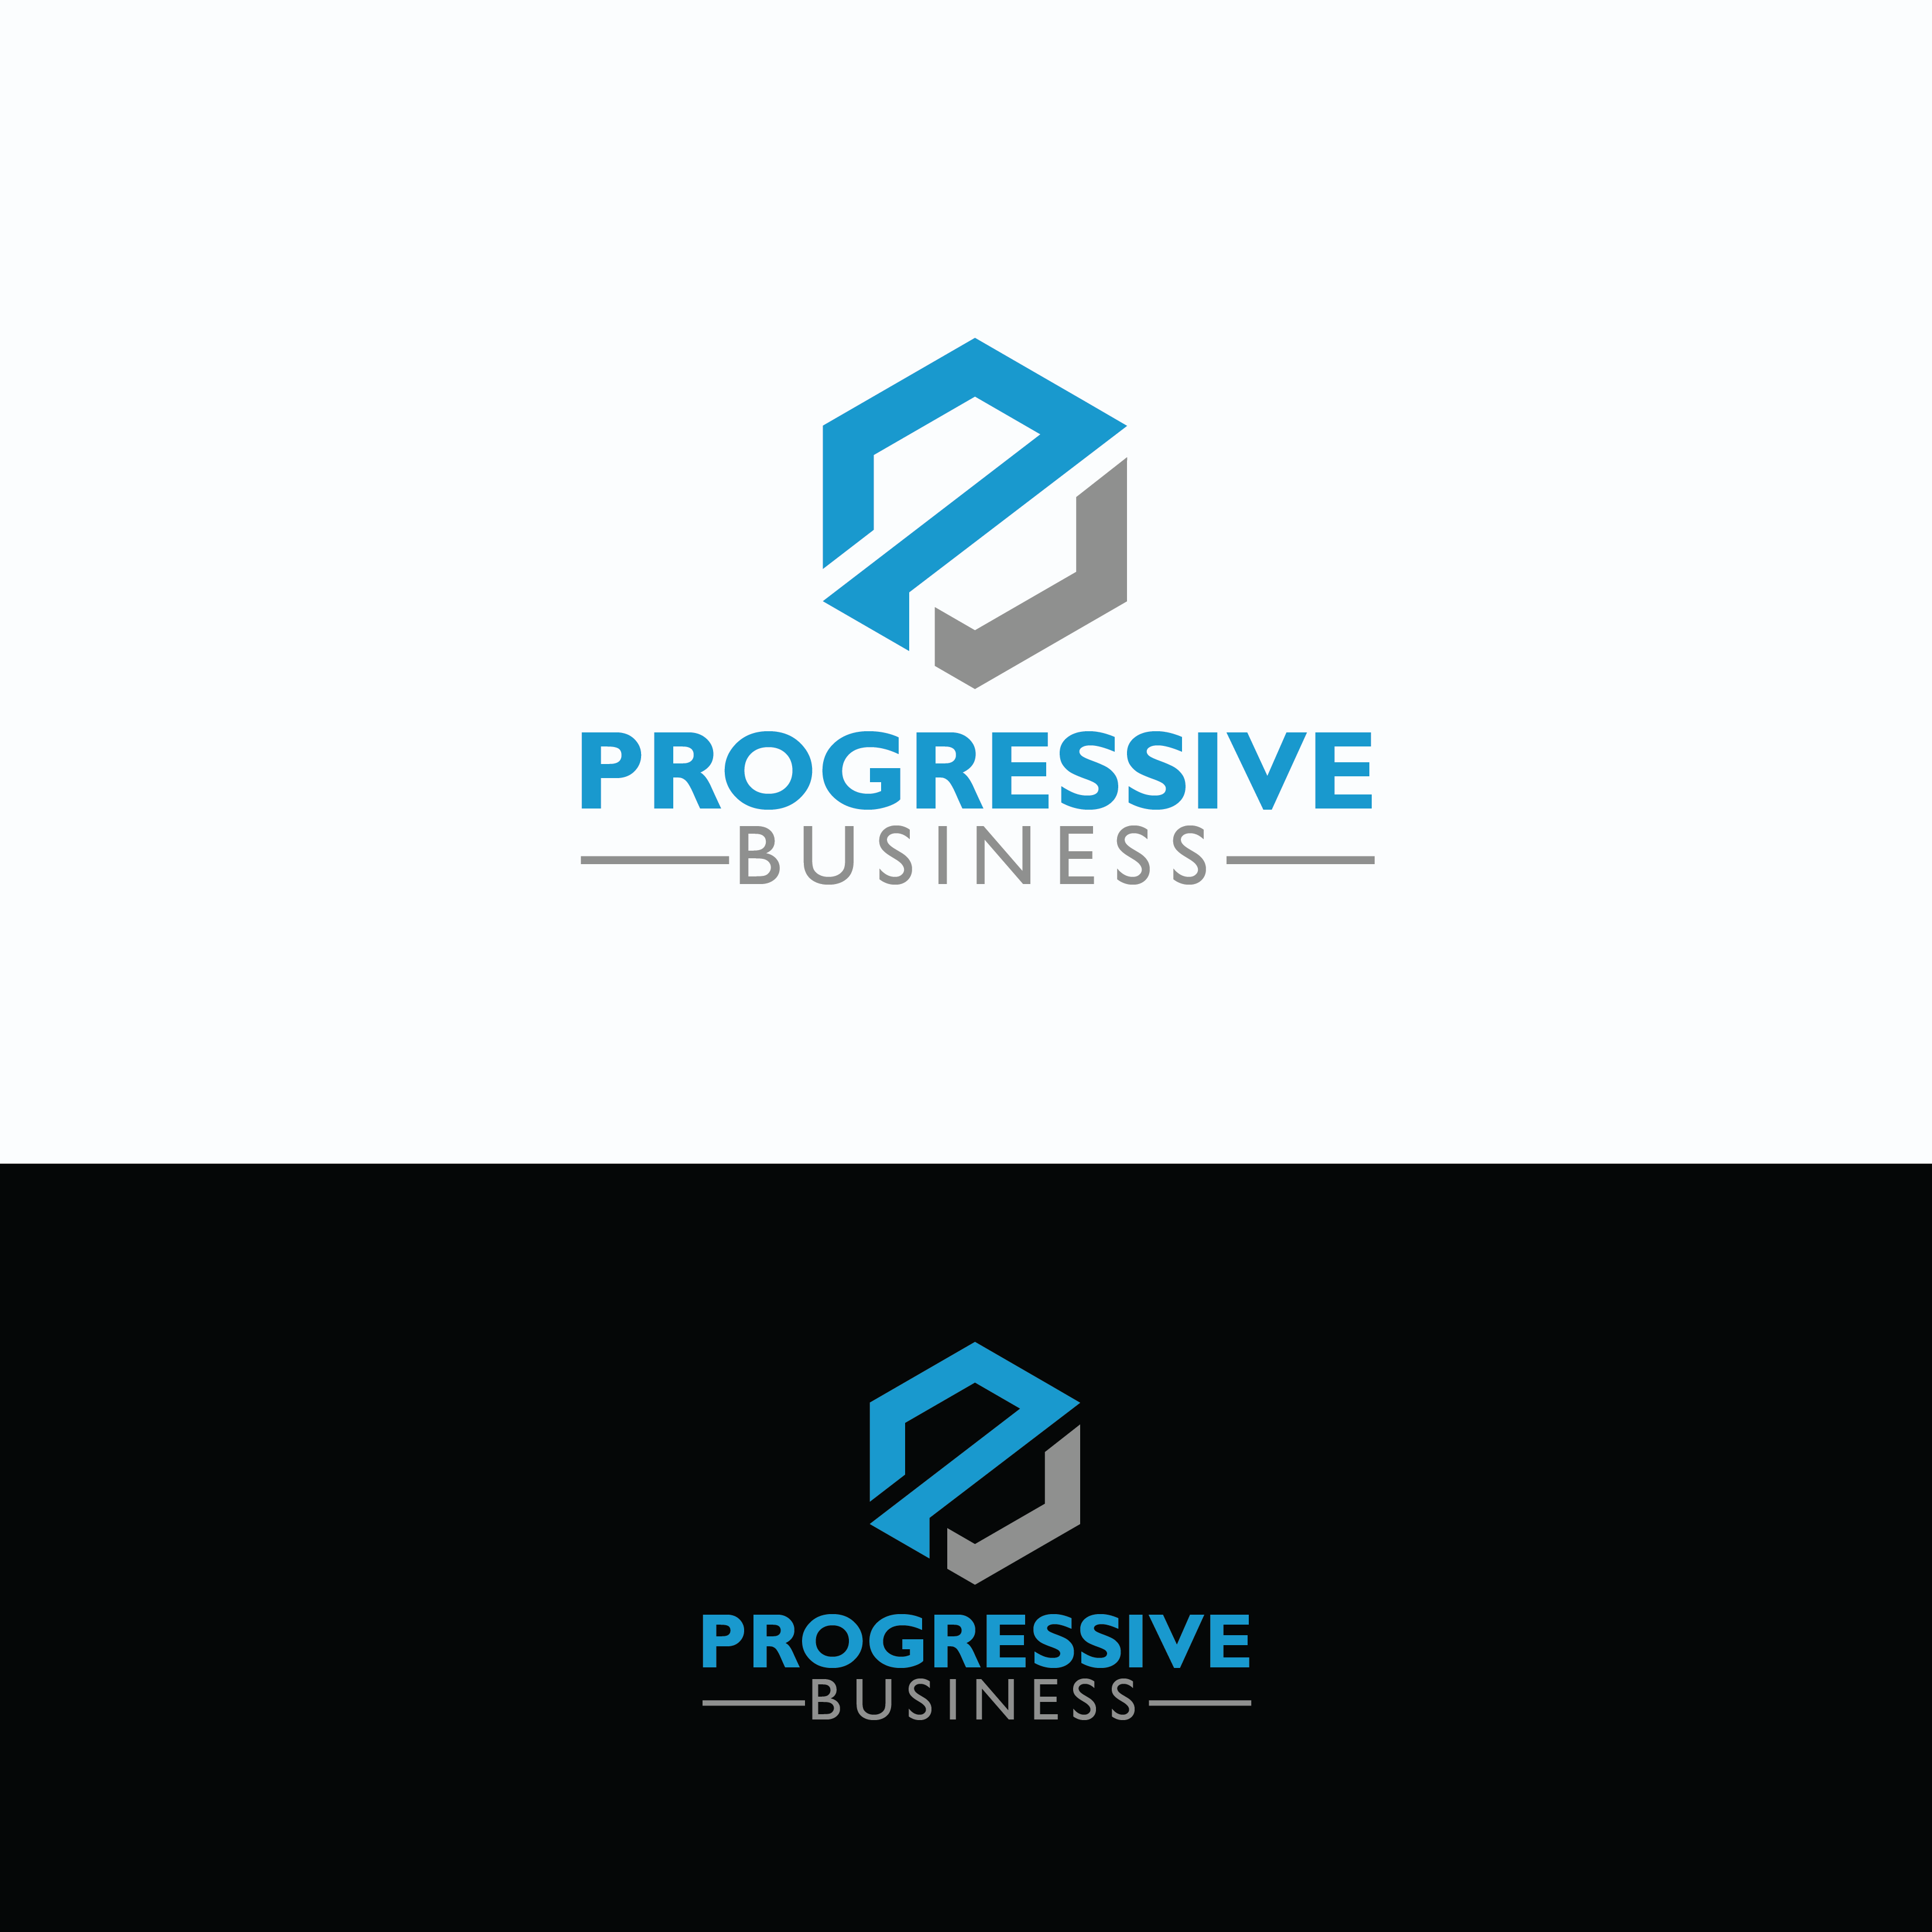 Logo Design by Private User - Entry No. 122 in the Logo Design Contest Captivating Logo Design for Progressive Business.